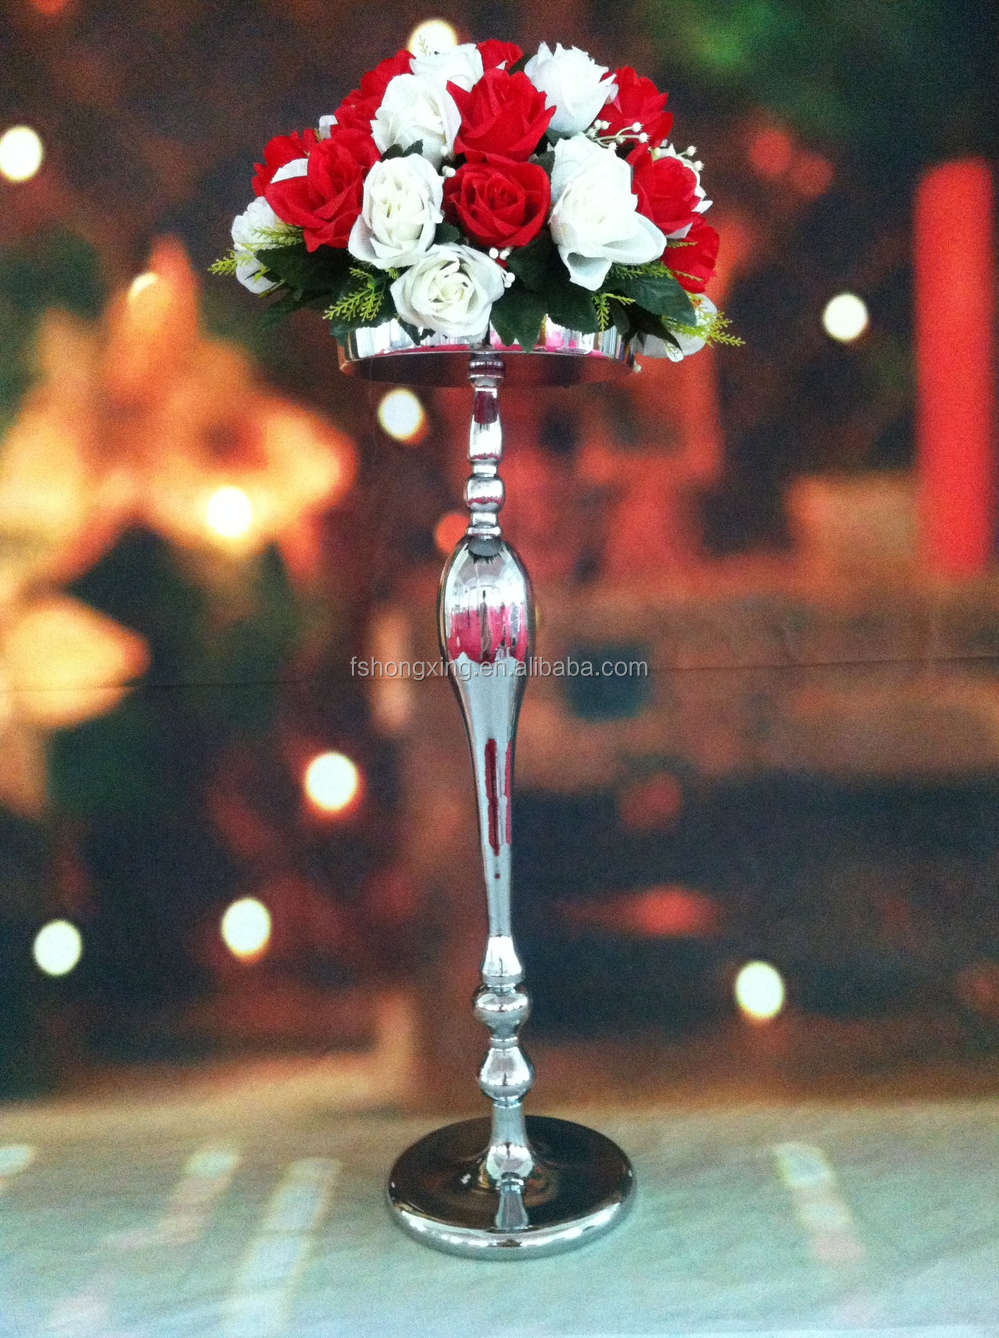 Hot metal sliver tall wedding flower vase stand elegant